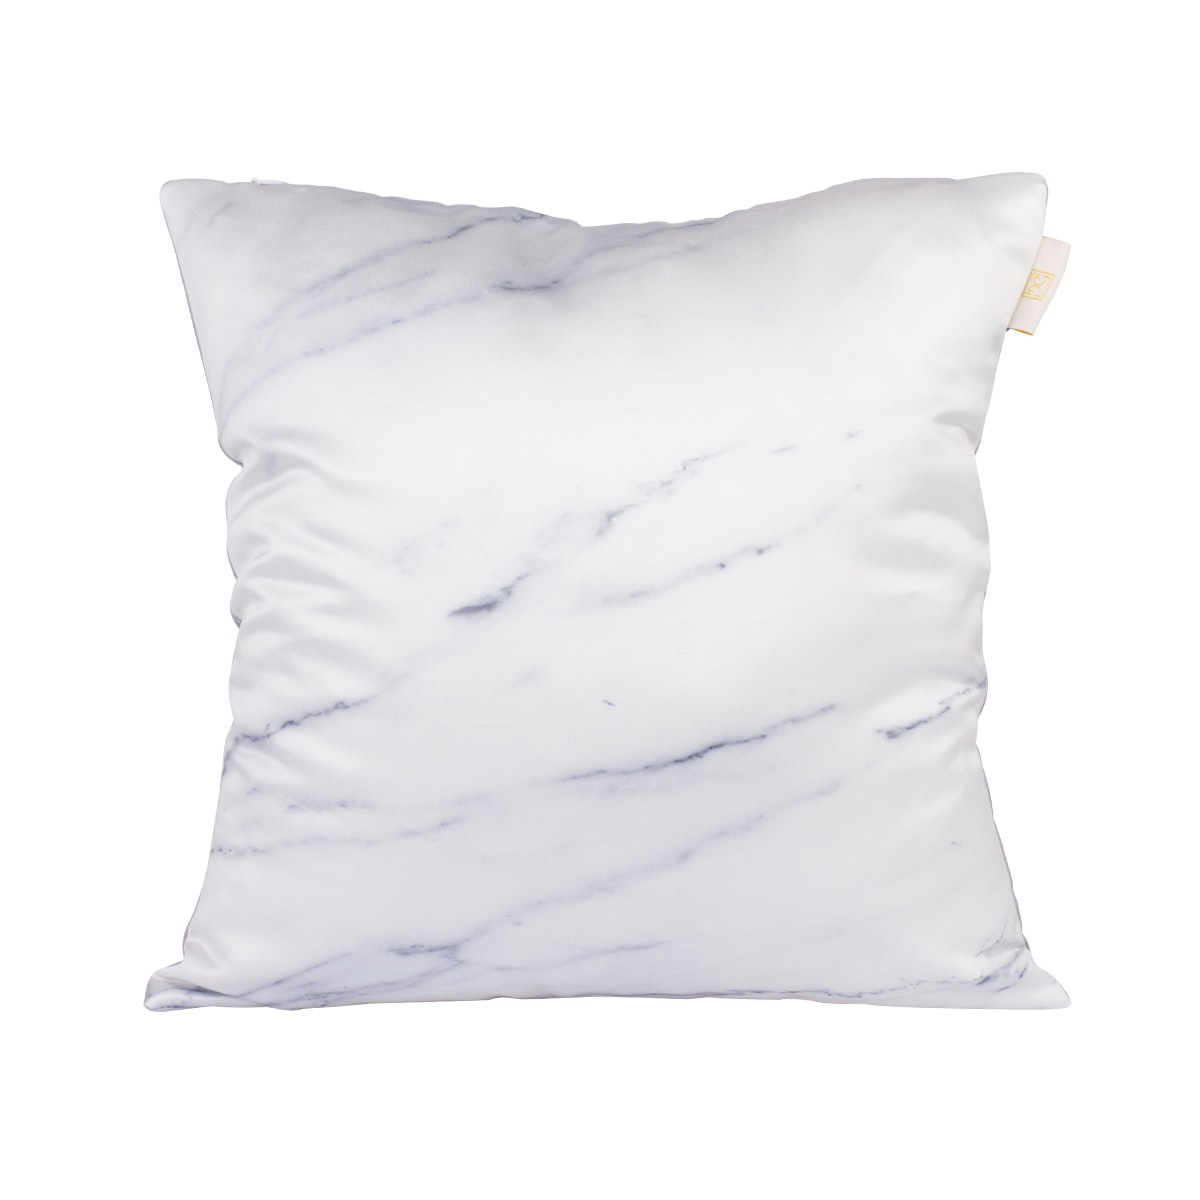 Glerry Home Decor White Moonstone Cushion 40x40cm